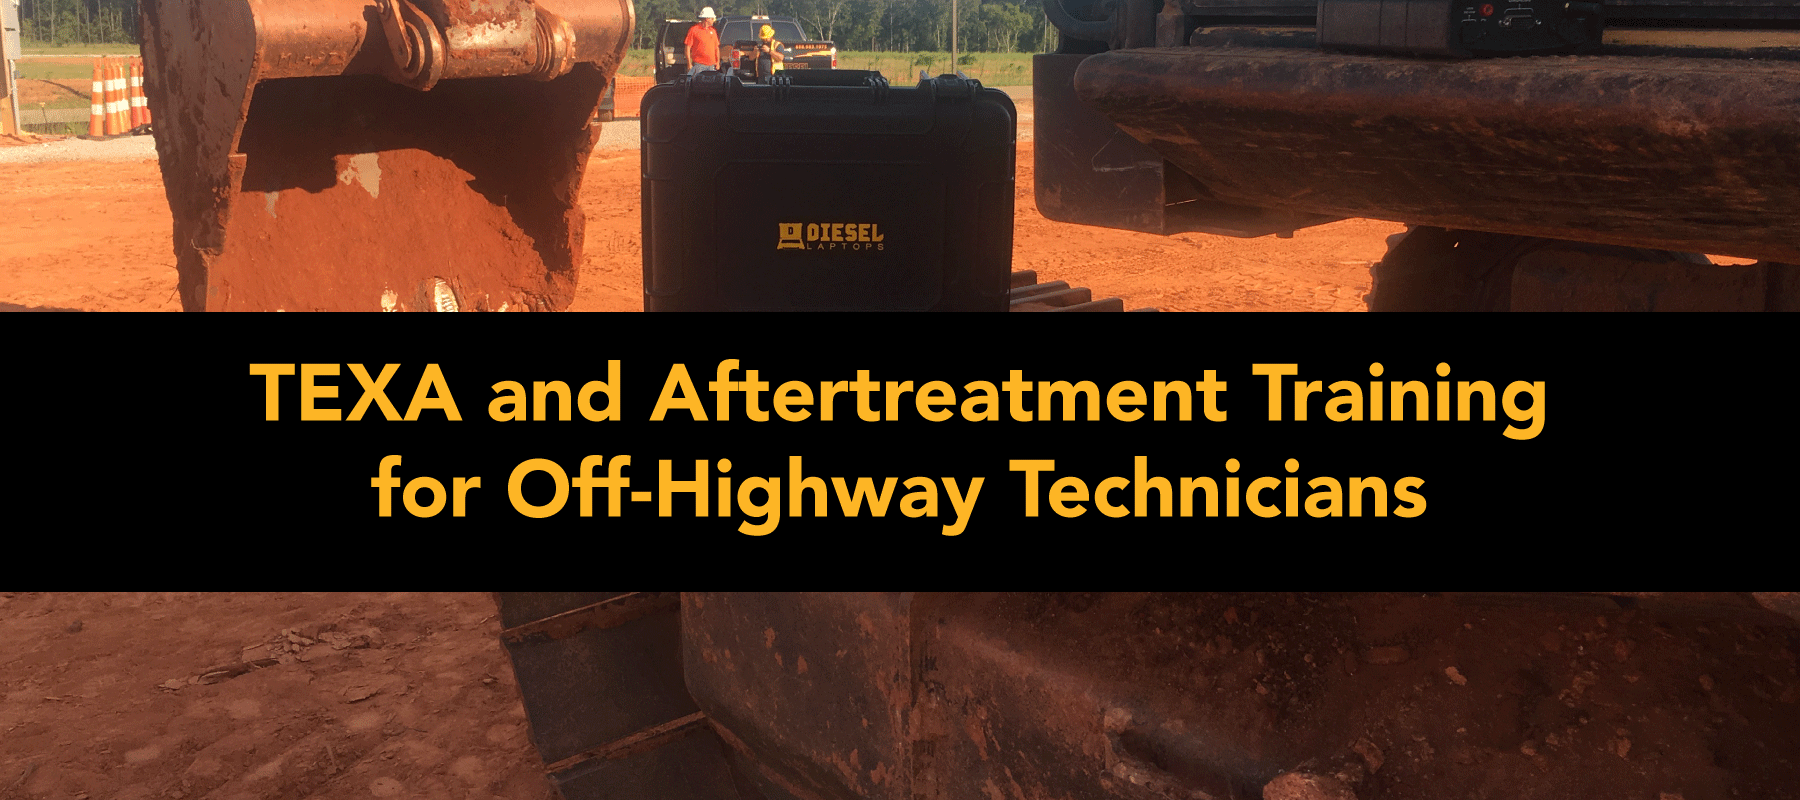 Off-Highway TEXA and Aftertreatment Training